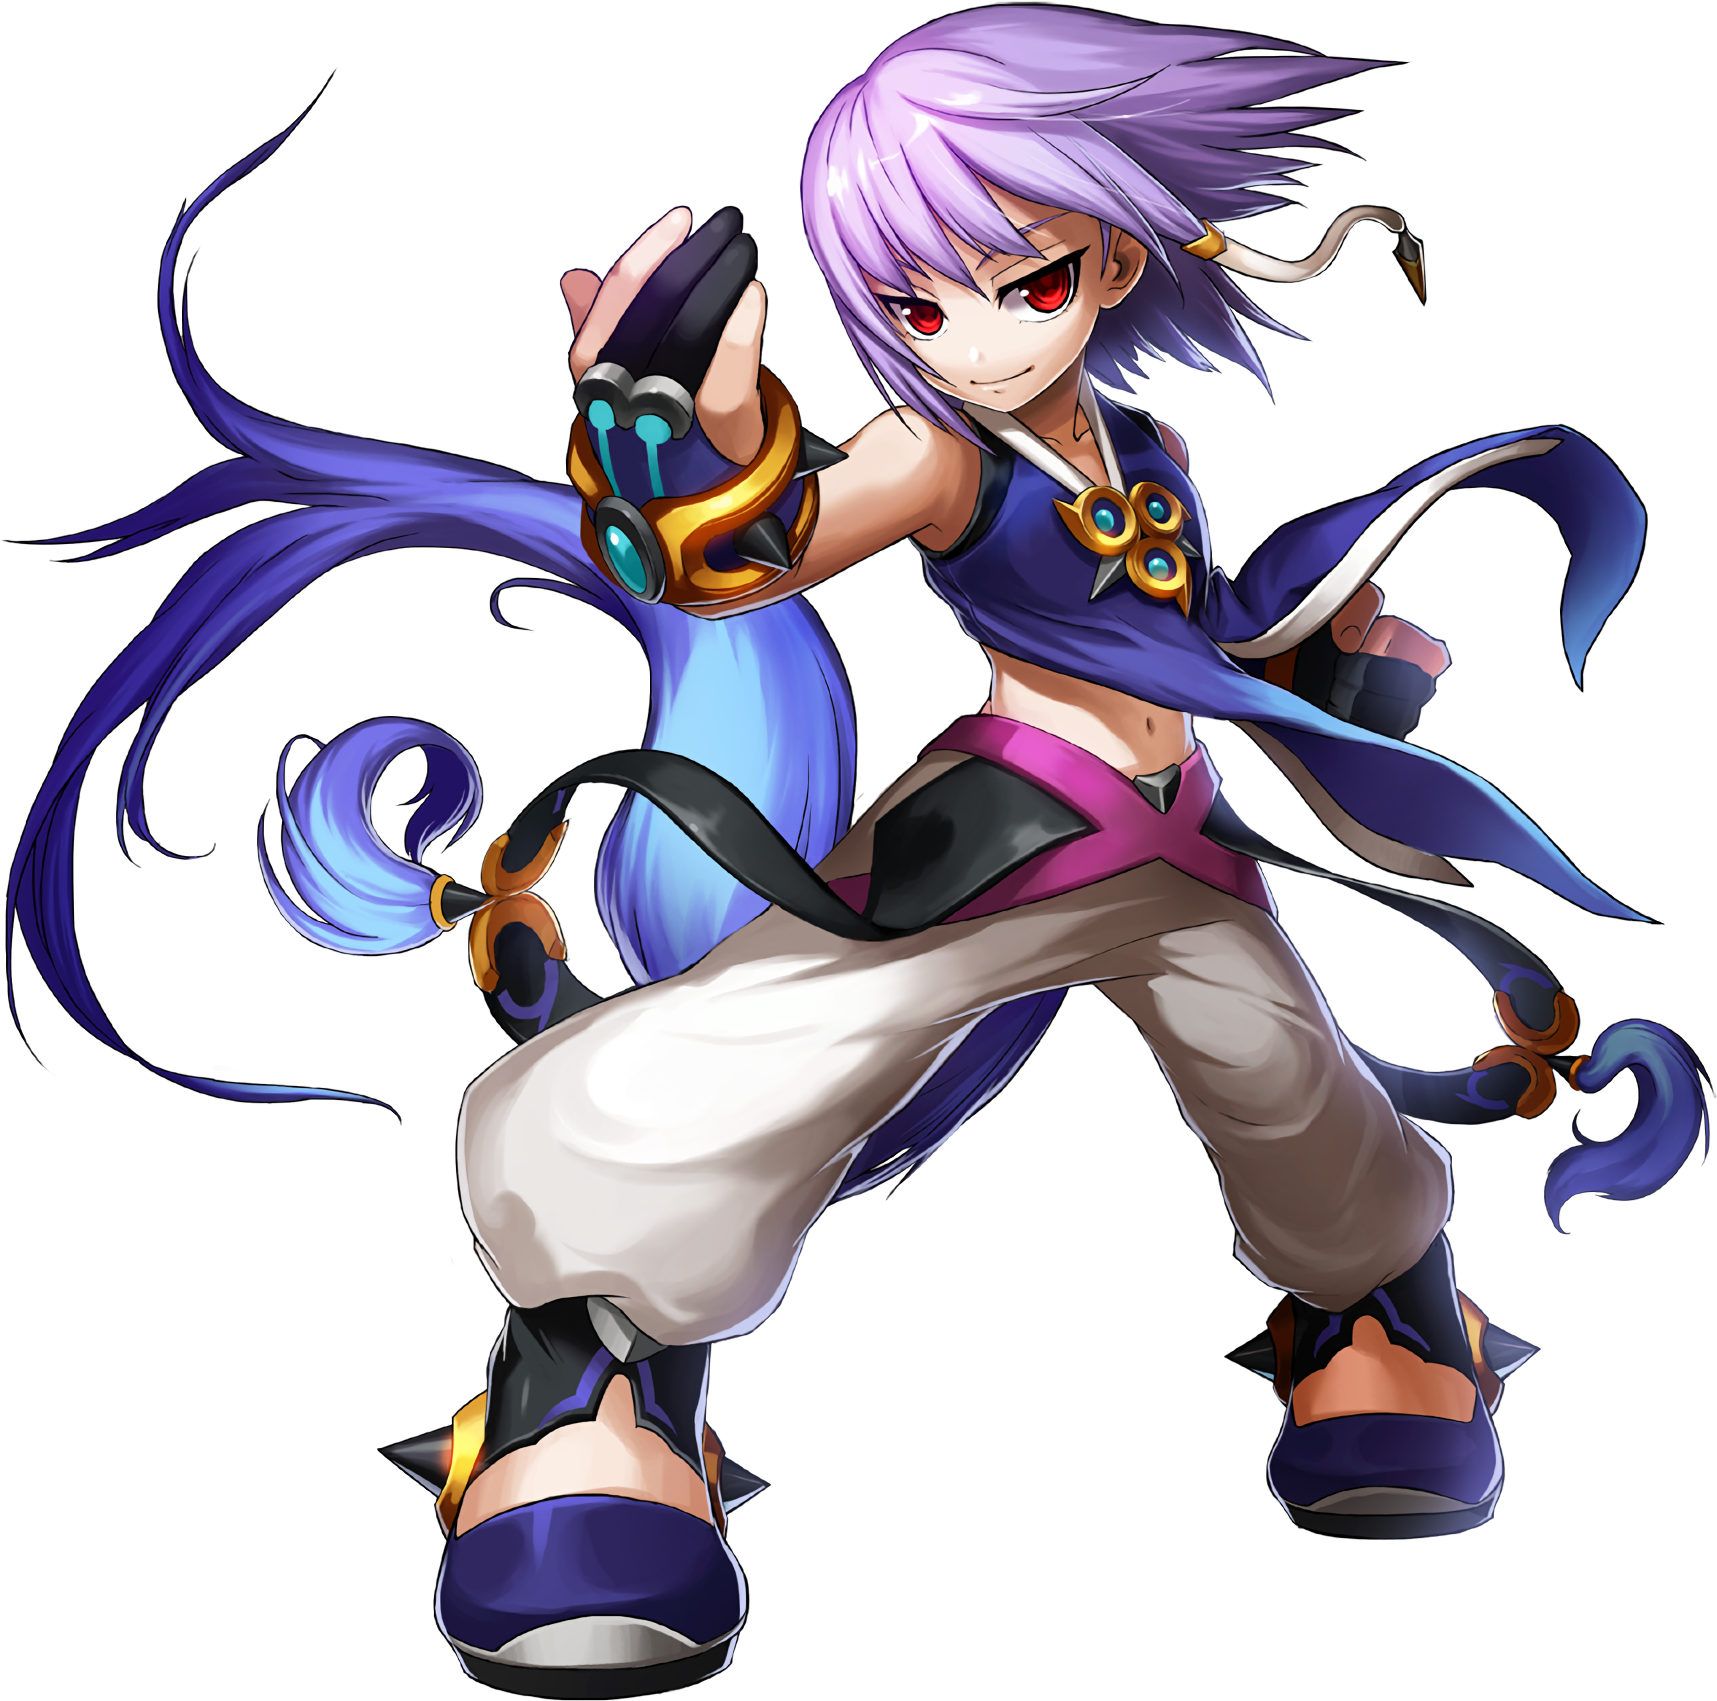 Asin | Grand Chase Wiki | FANDOM powered by Wikia